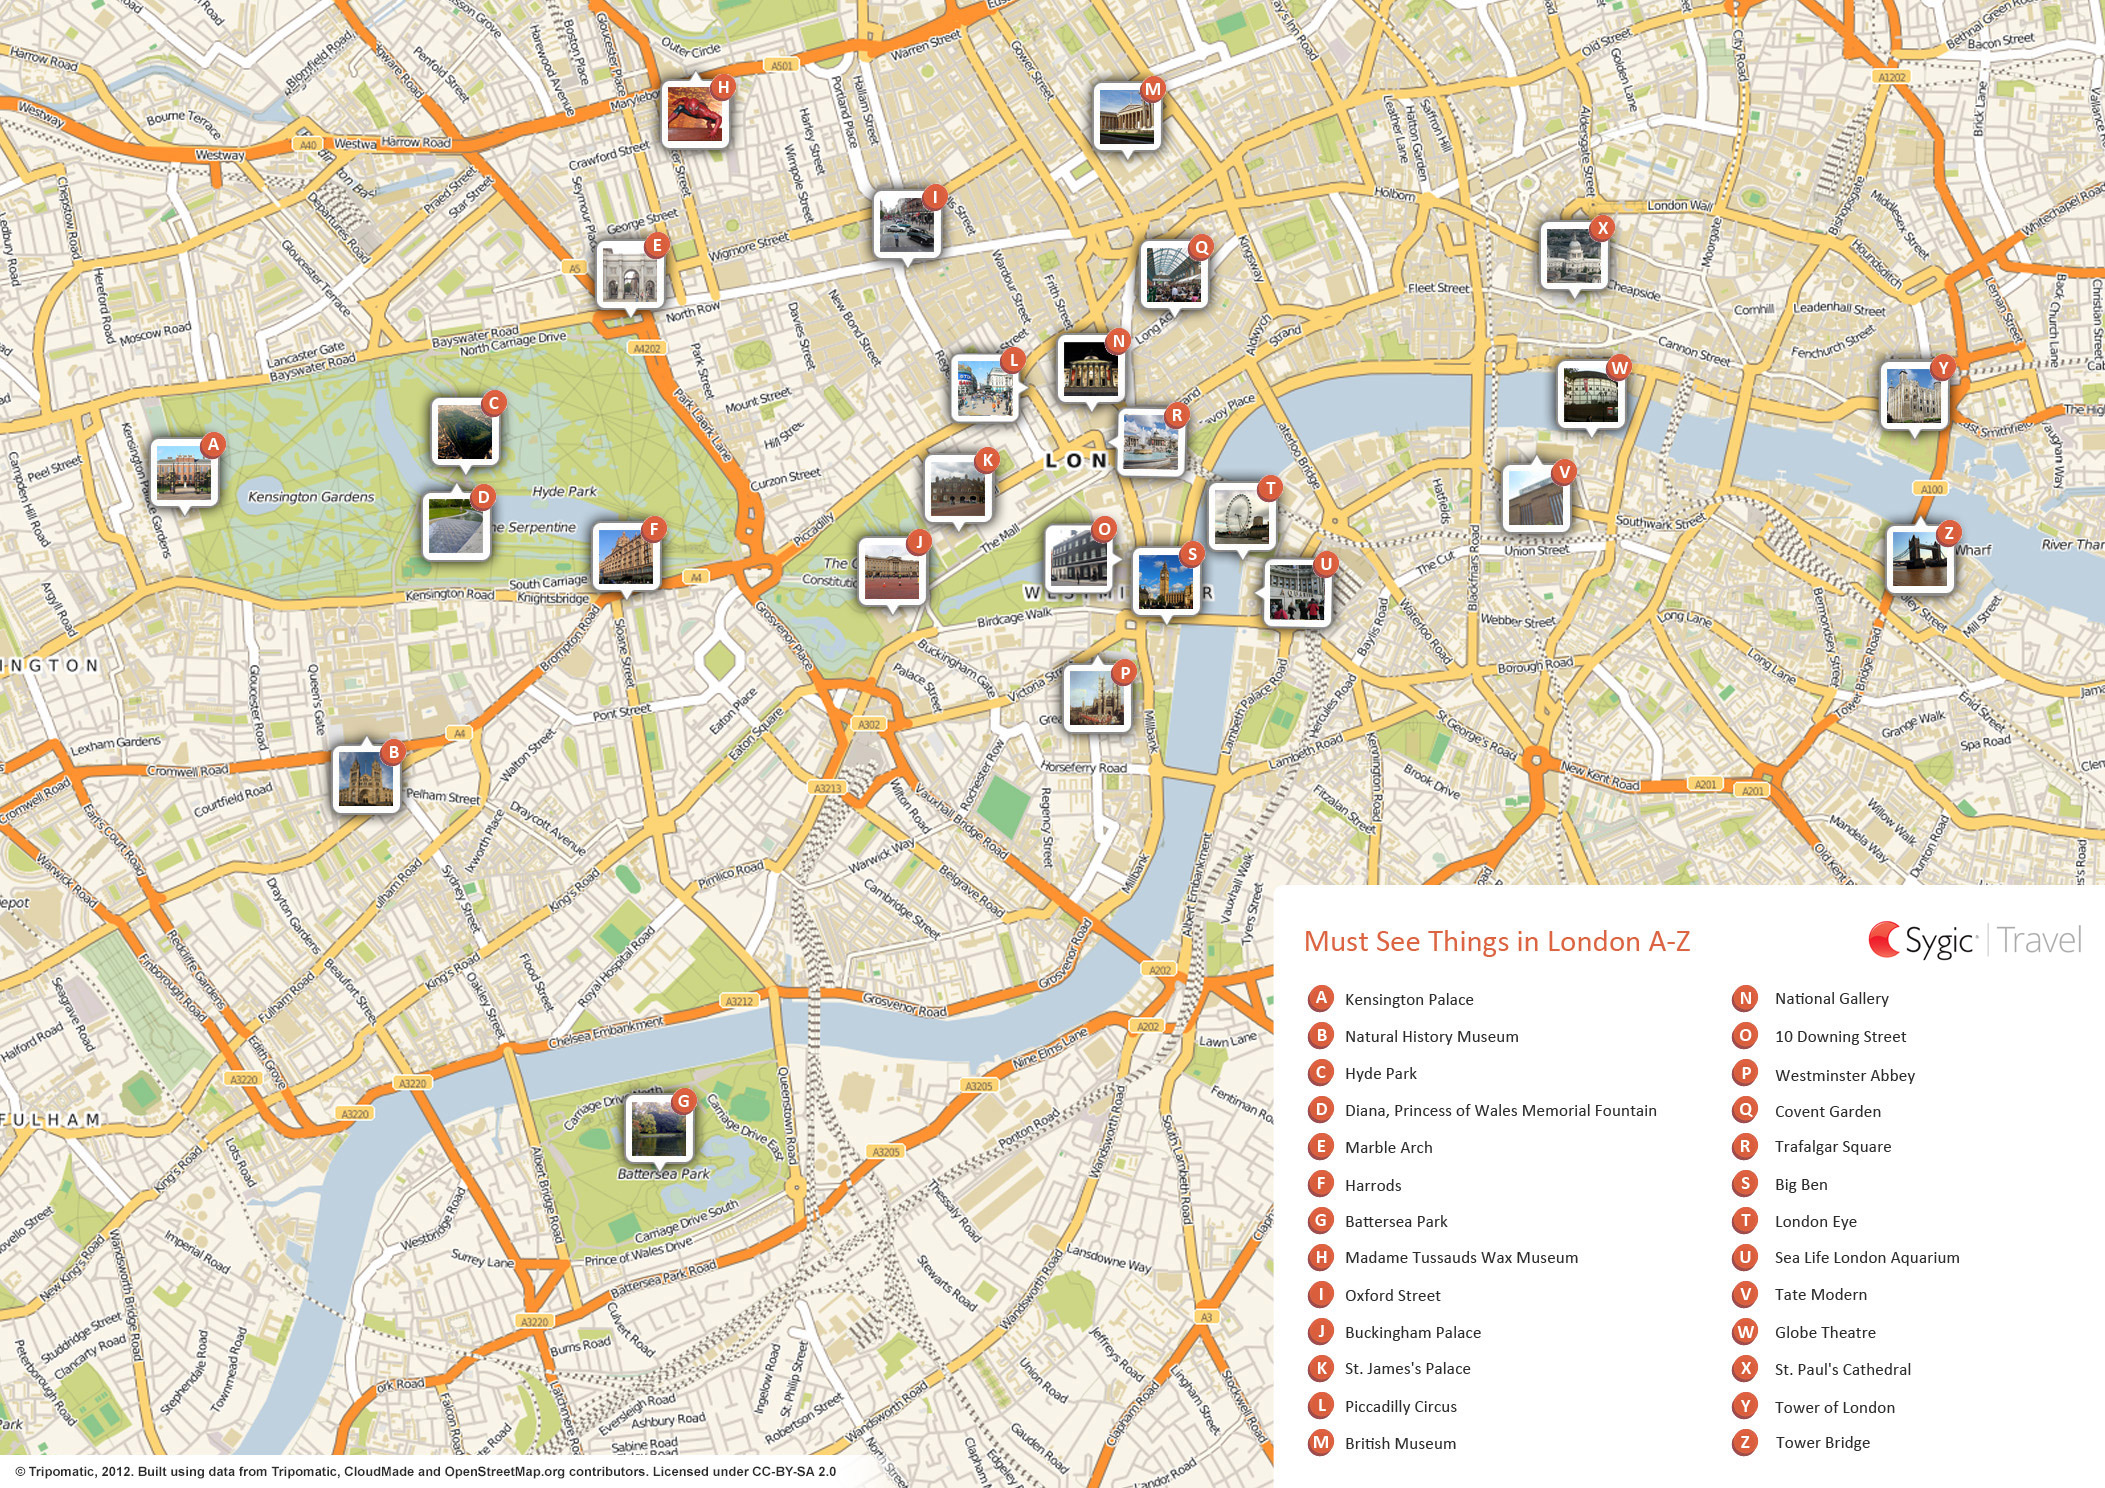 London Printable Tourist Map – Map for London